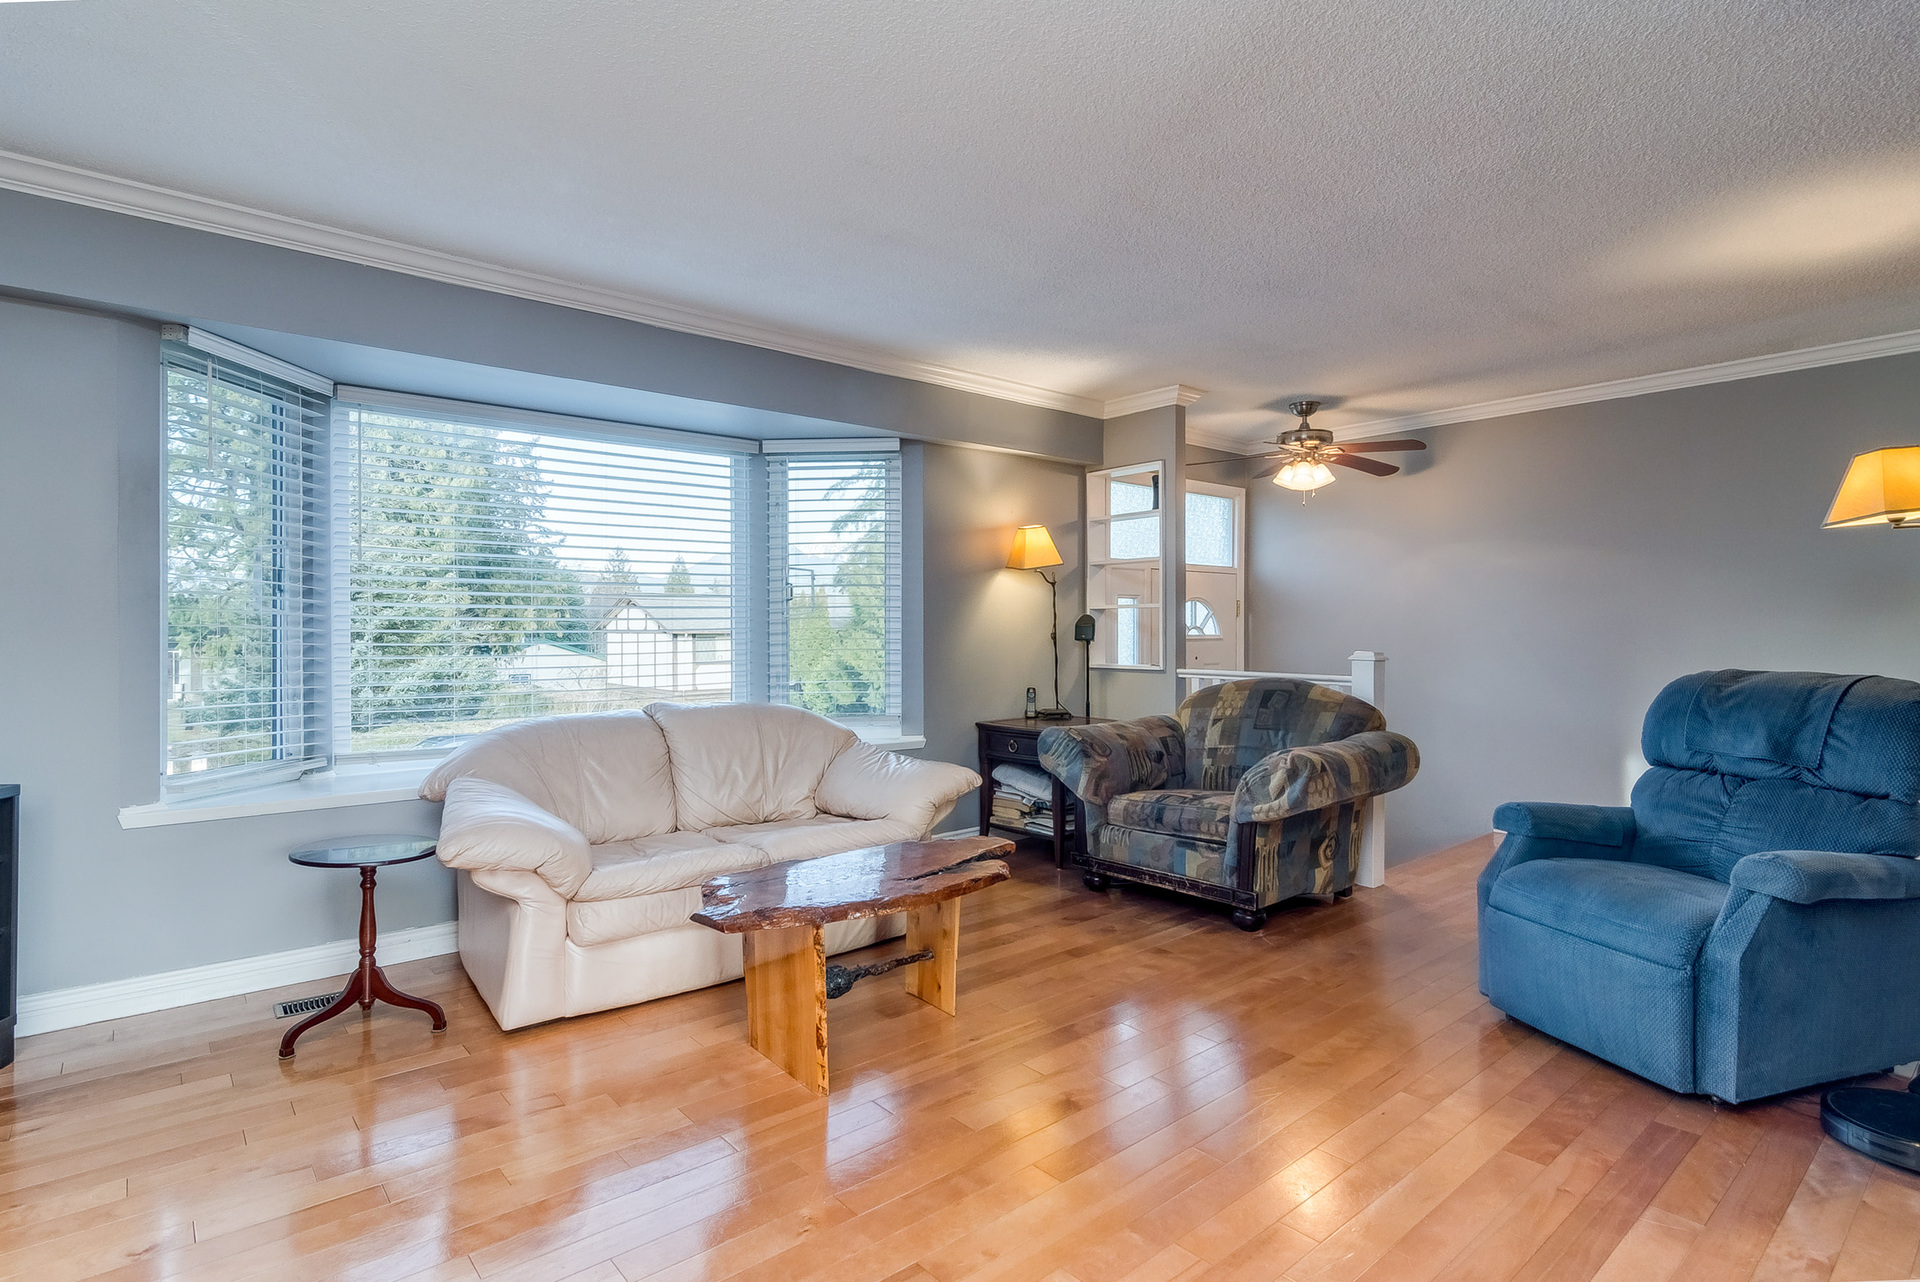 38072_5 at 21682 125 Avenue, West Central, Maple Ridge